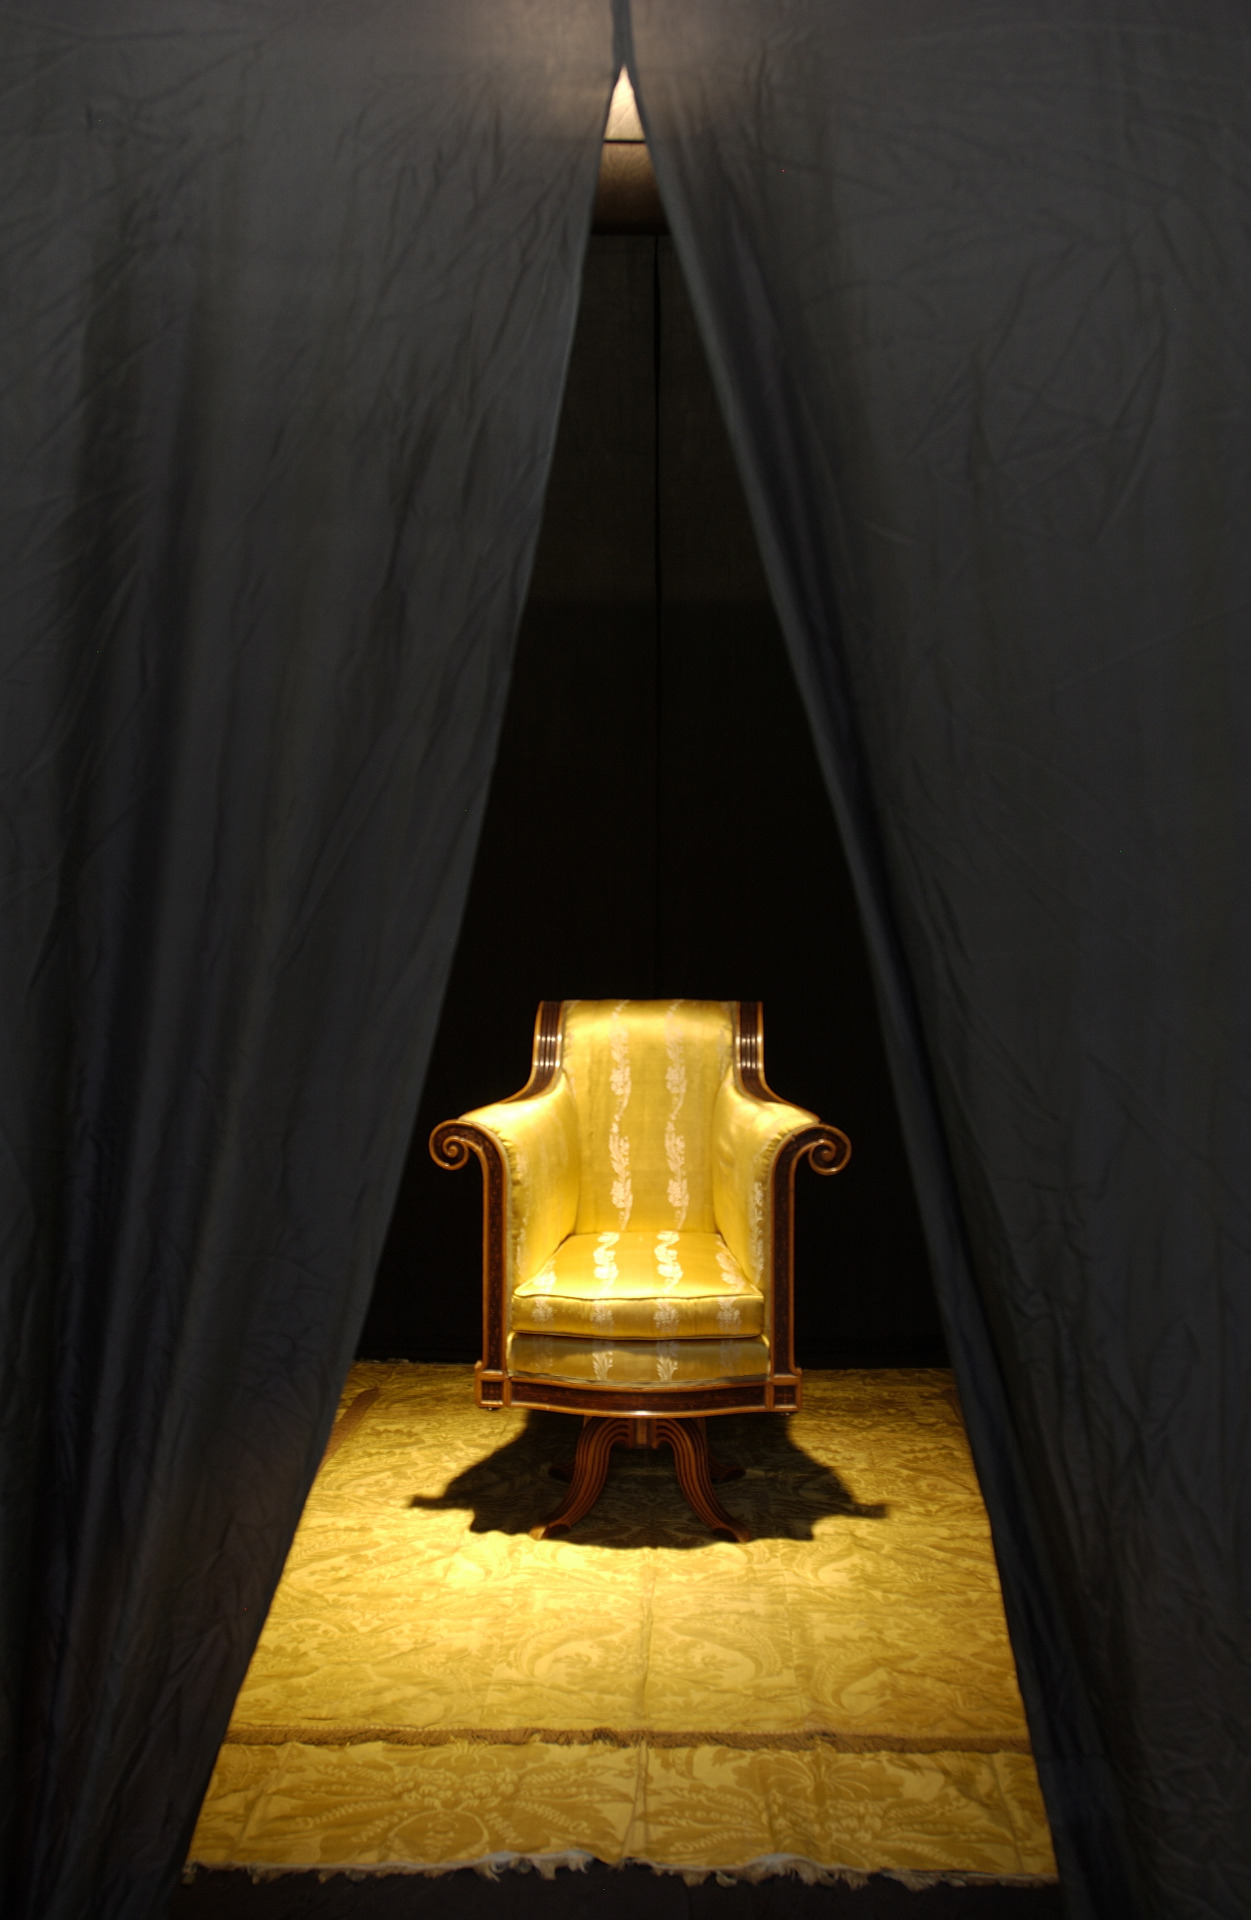 James Lee Byars, Hear TH FI TO IN PH Around This Chair, 1978